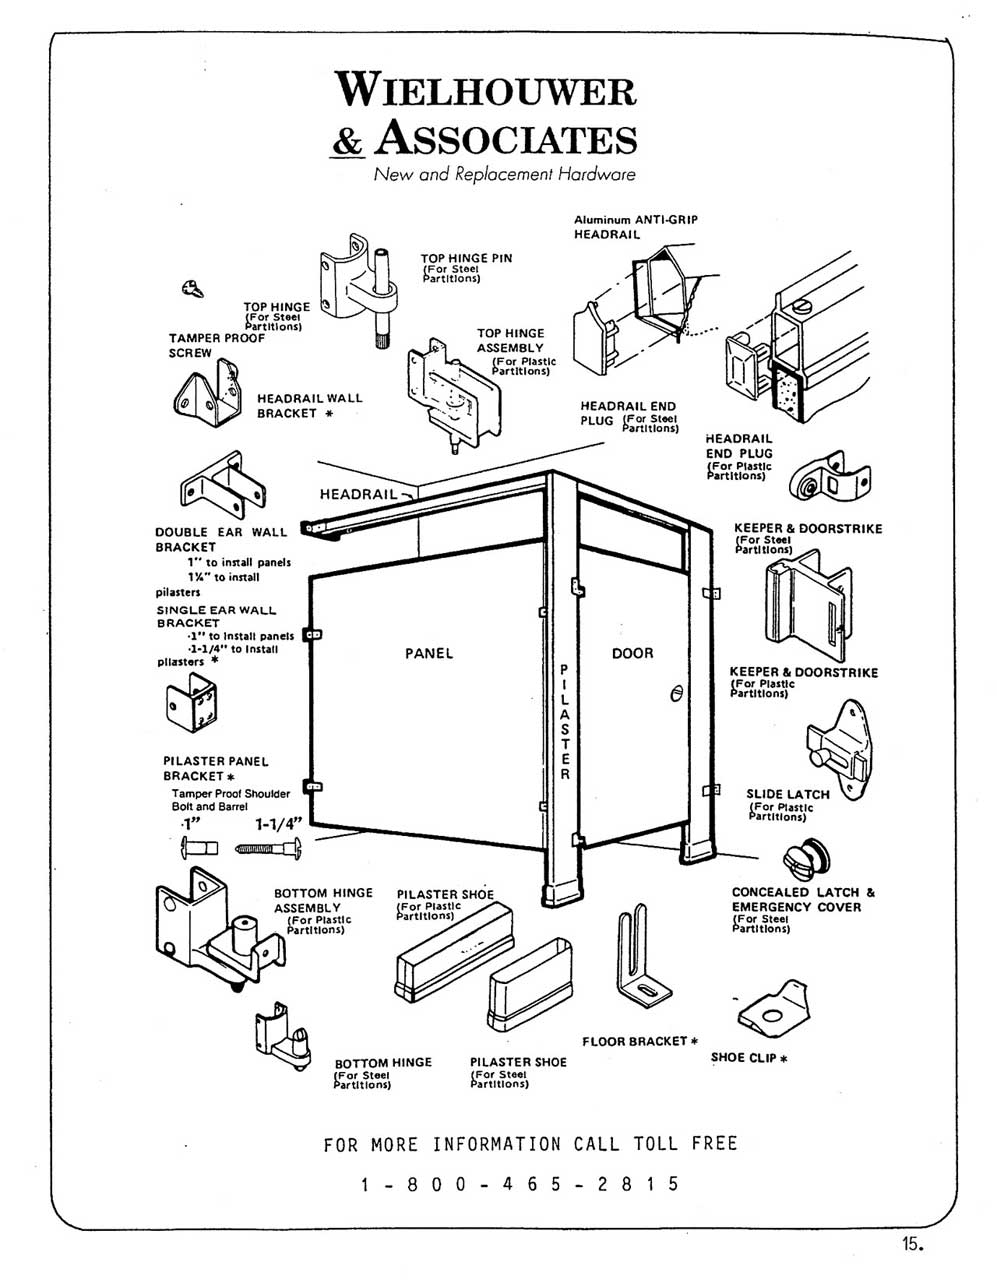 hight resolution of toilet partition diagram showing common components and replacement parts